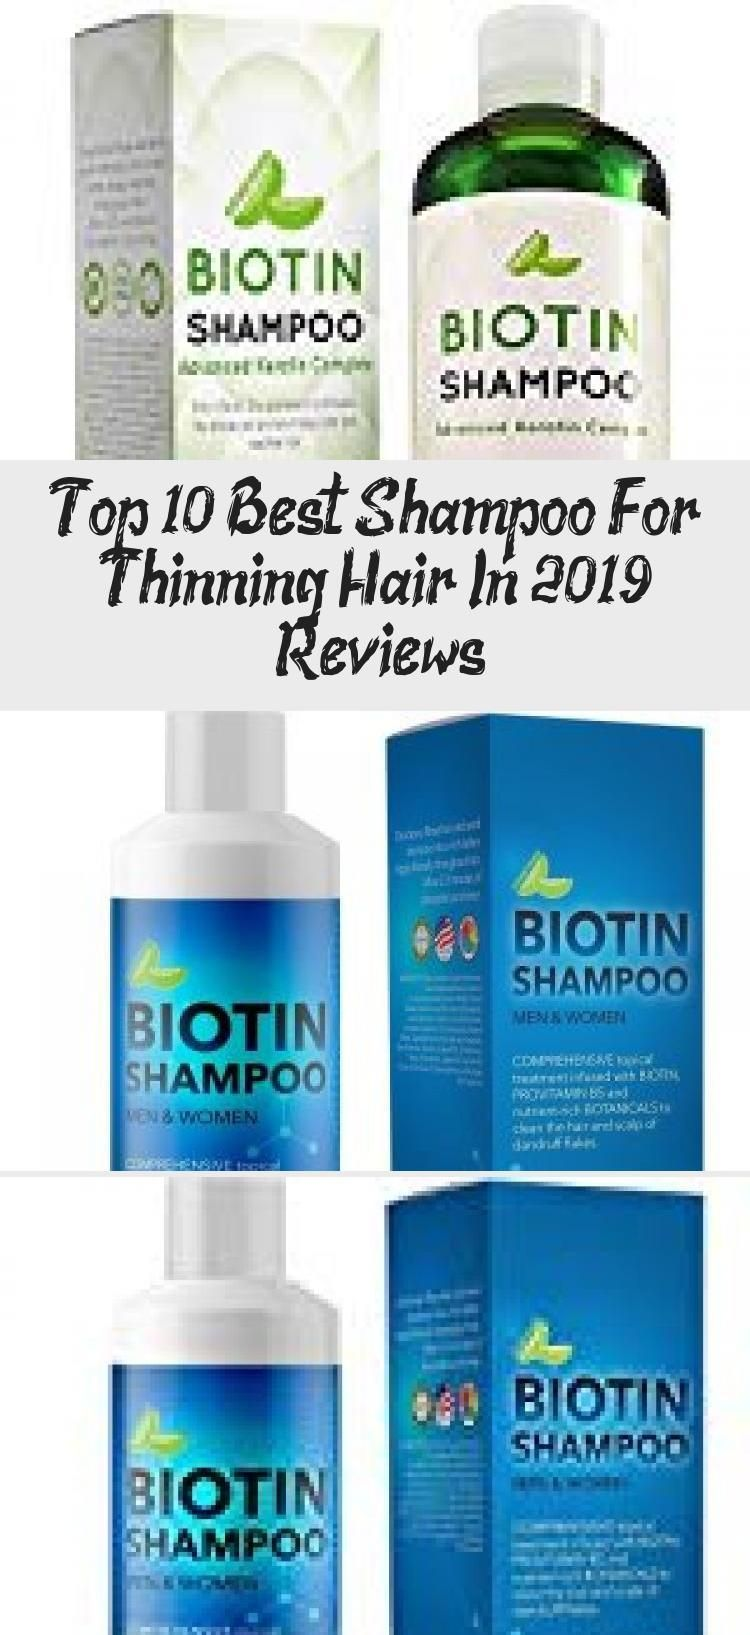 Hair Growth Supplement} and Top 10 Best Shampoo For Thinning Hair In 2019 – Reviews #fasterhairgrowth DermaChange- Organic Vegan Conditioner Set Natural Hair Growth Shampoo #hairgrowthFaster #hairgrowthForKids #CastorOilhairgrowth #hairgrowthSpell #hairgrowthInAMonth